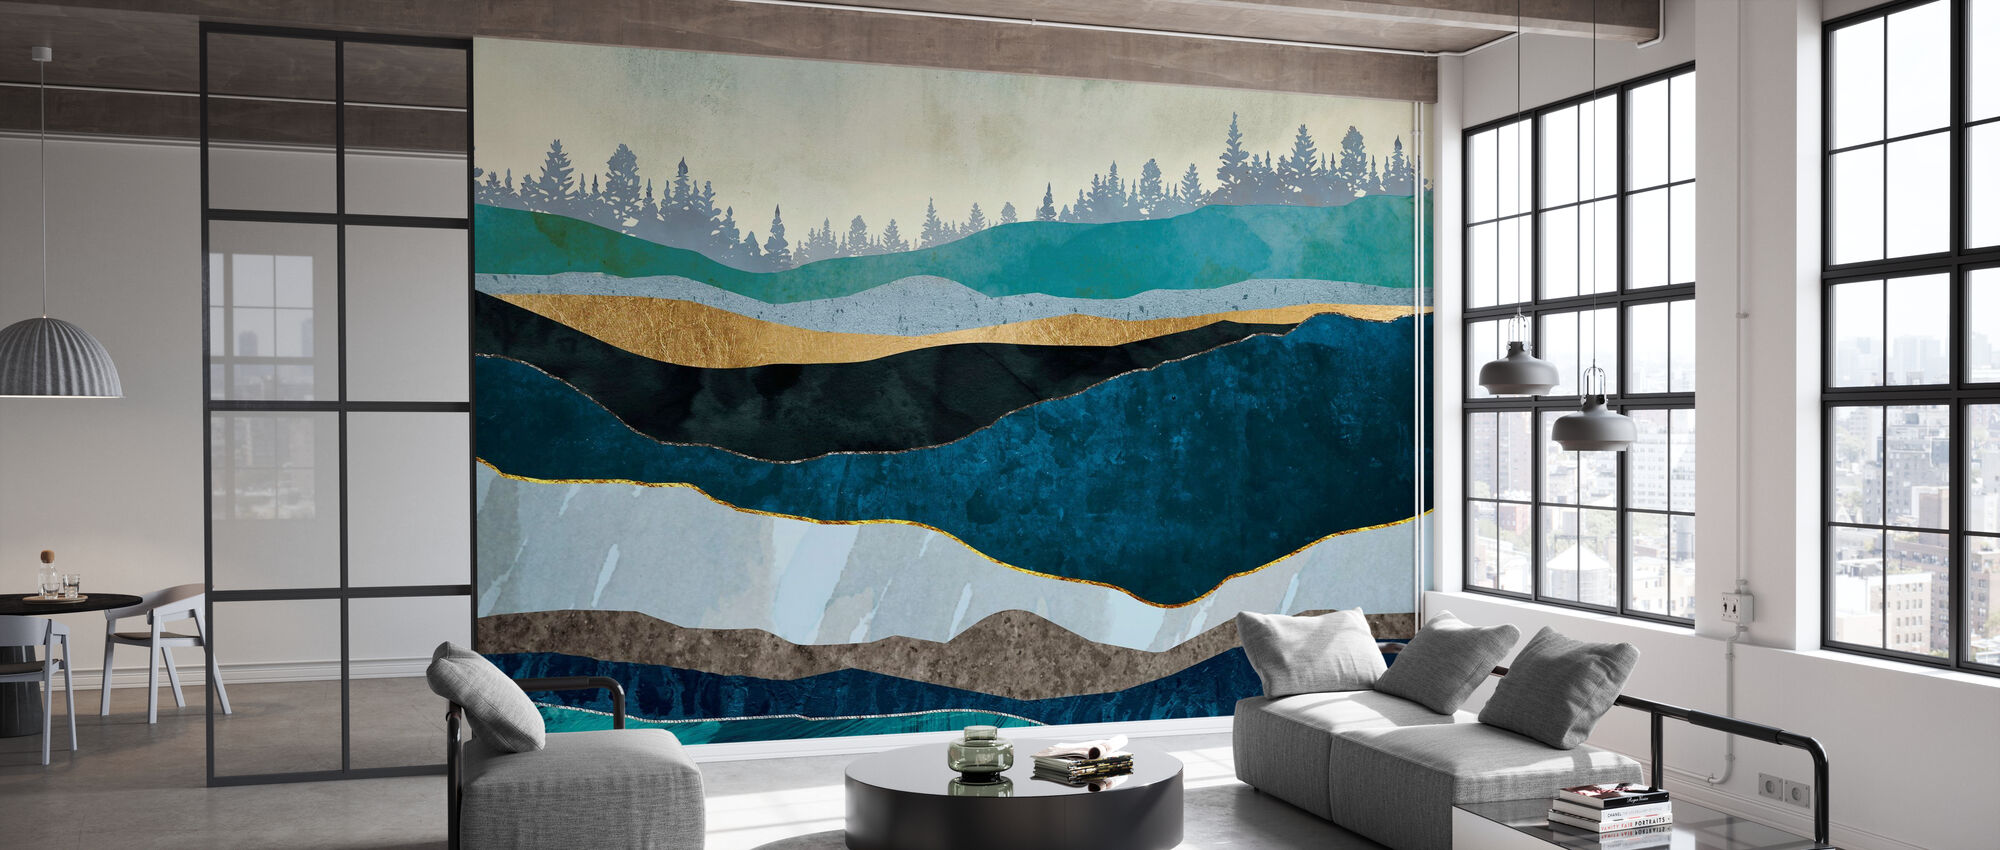 Turquoise Hills - Wallpaper - Office